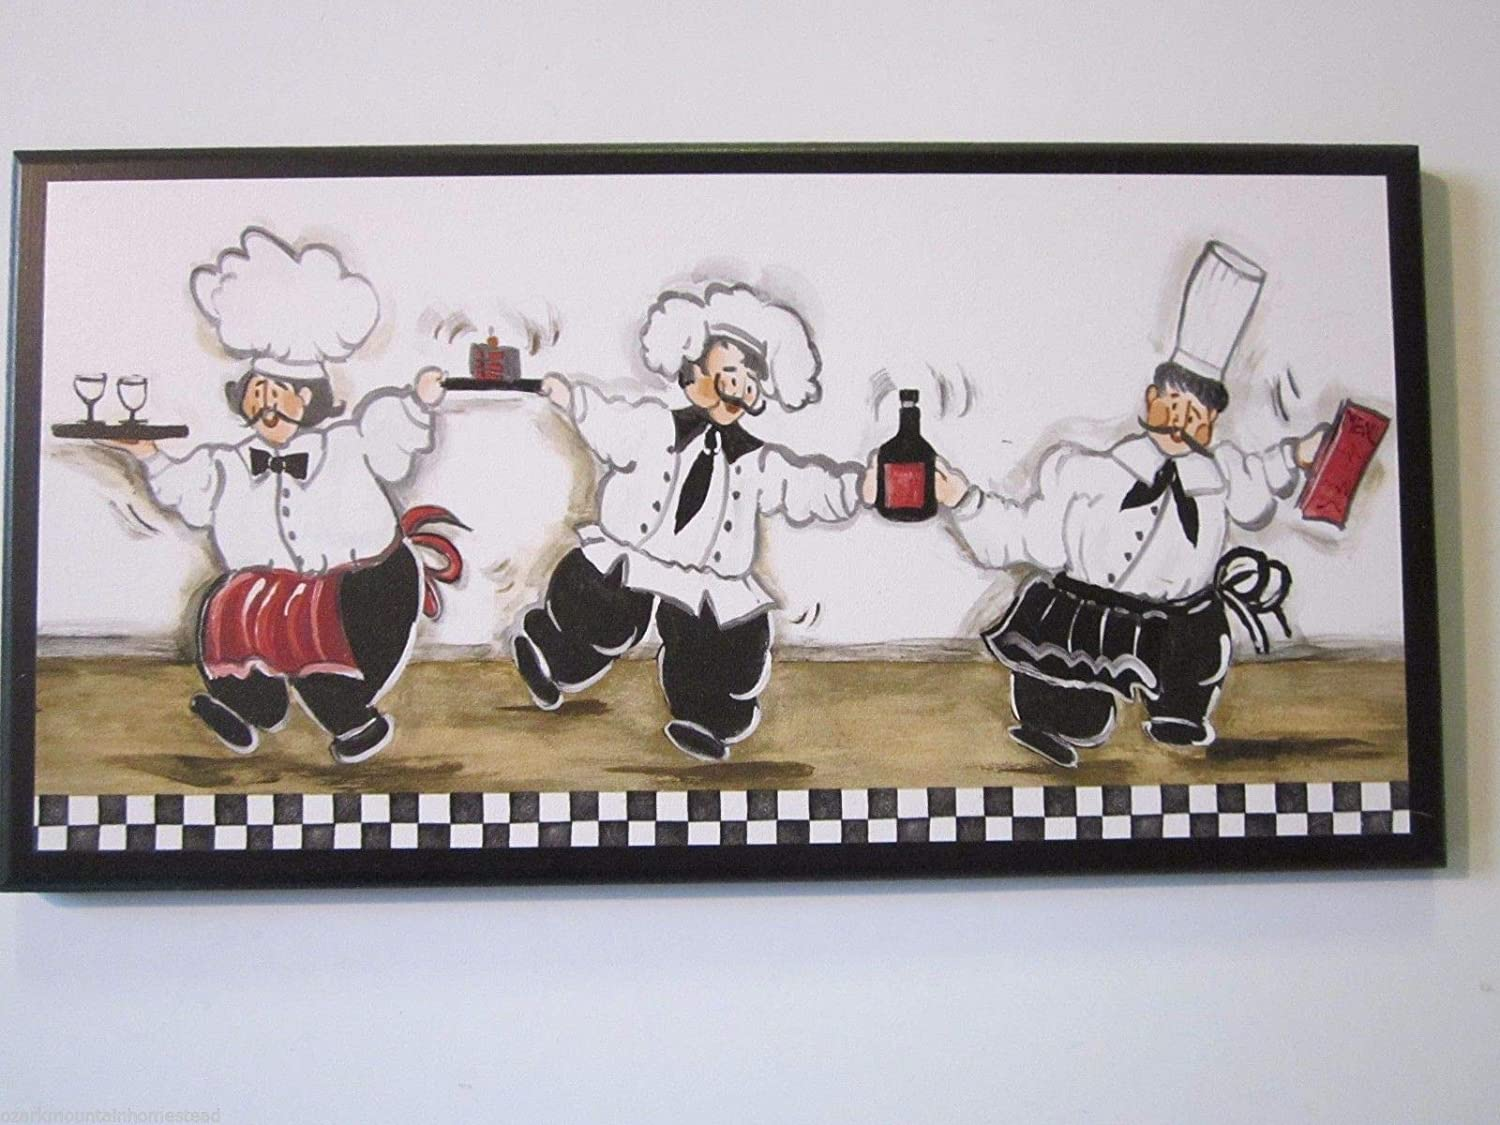 Chef Kitchen Plaque, Bistro French Chefs, Dancing with Wine, White Black Red - Wood Wooden Picture Wall Decor Sign Hanging Unique Unusual Gift Handcrafted Handmade USA America